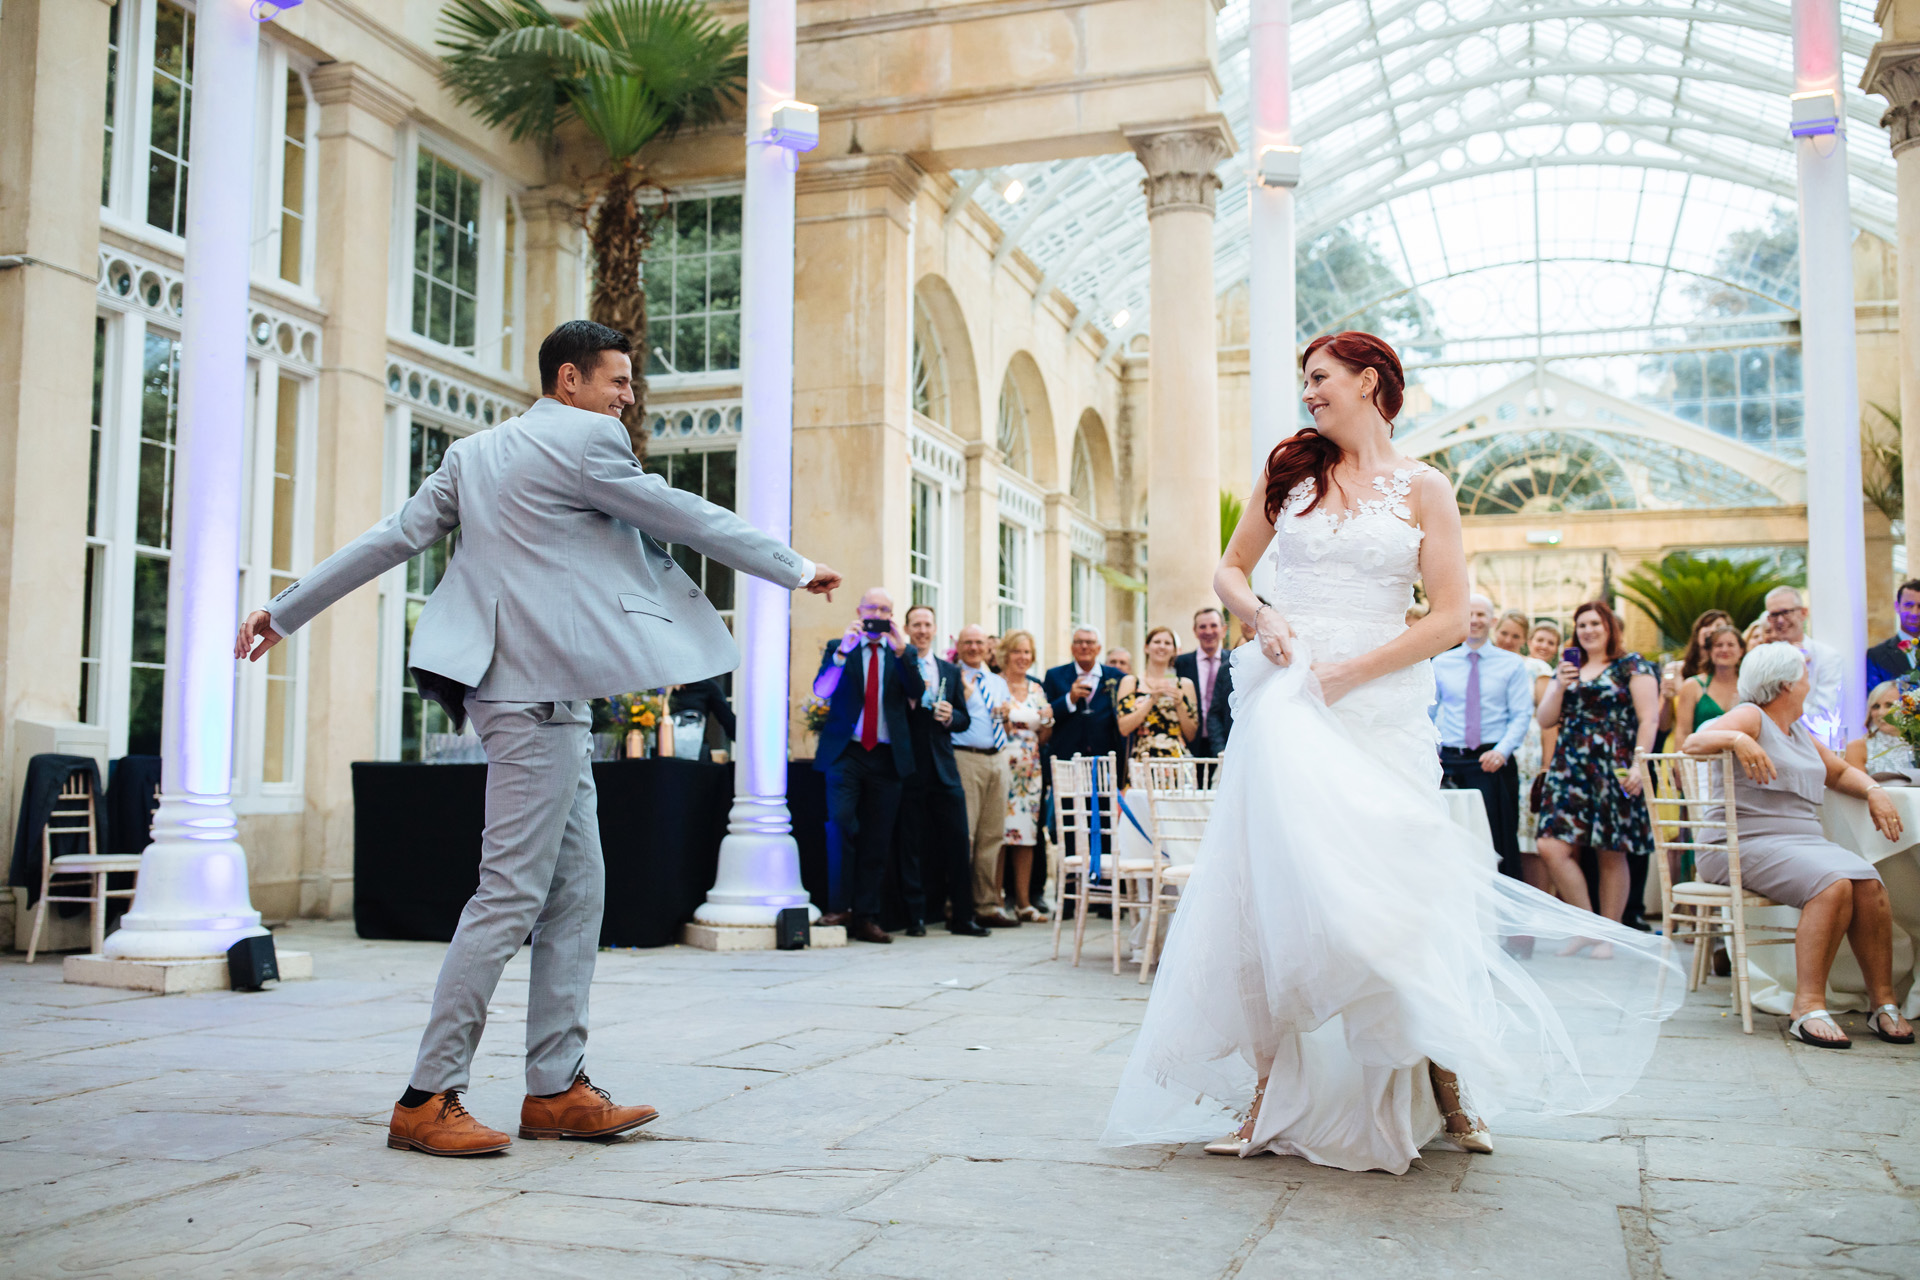 bride and groom twirling around in their first dance at syon park